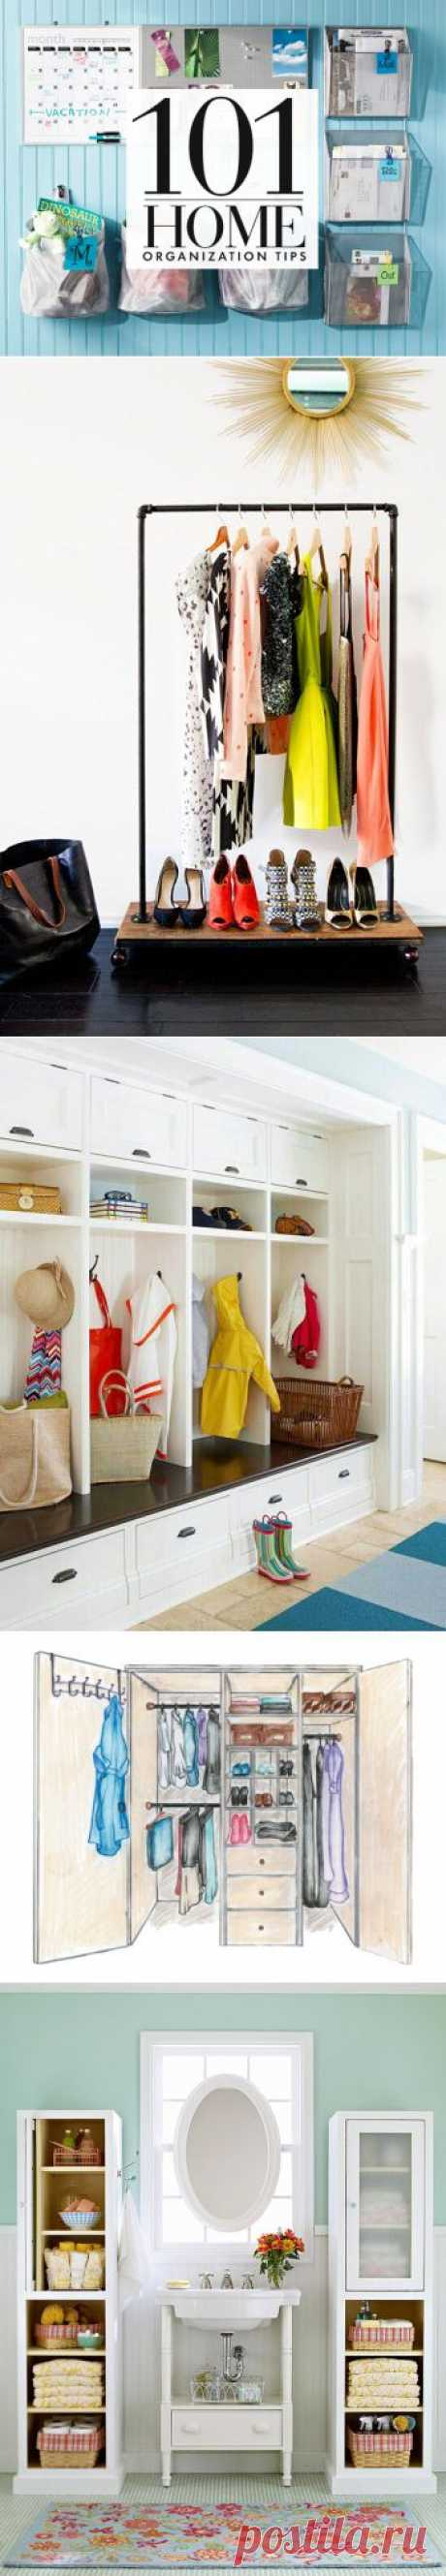 101 Home Organizing Tips and Tricks | The Vivant